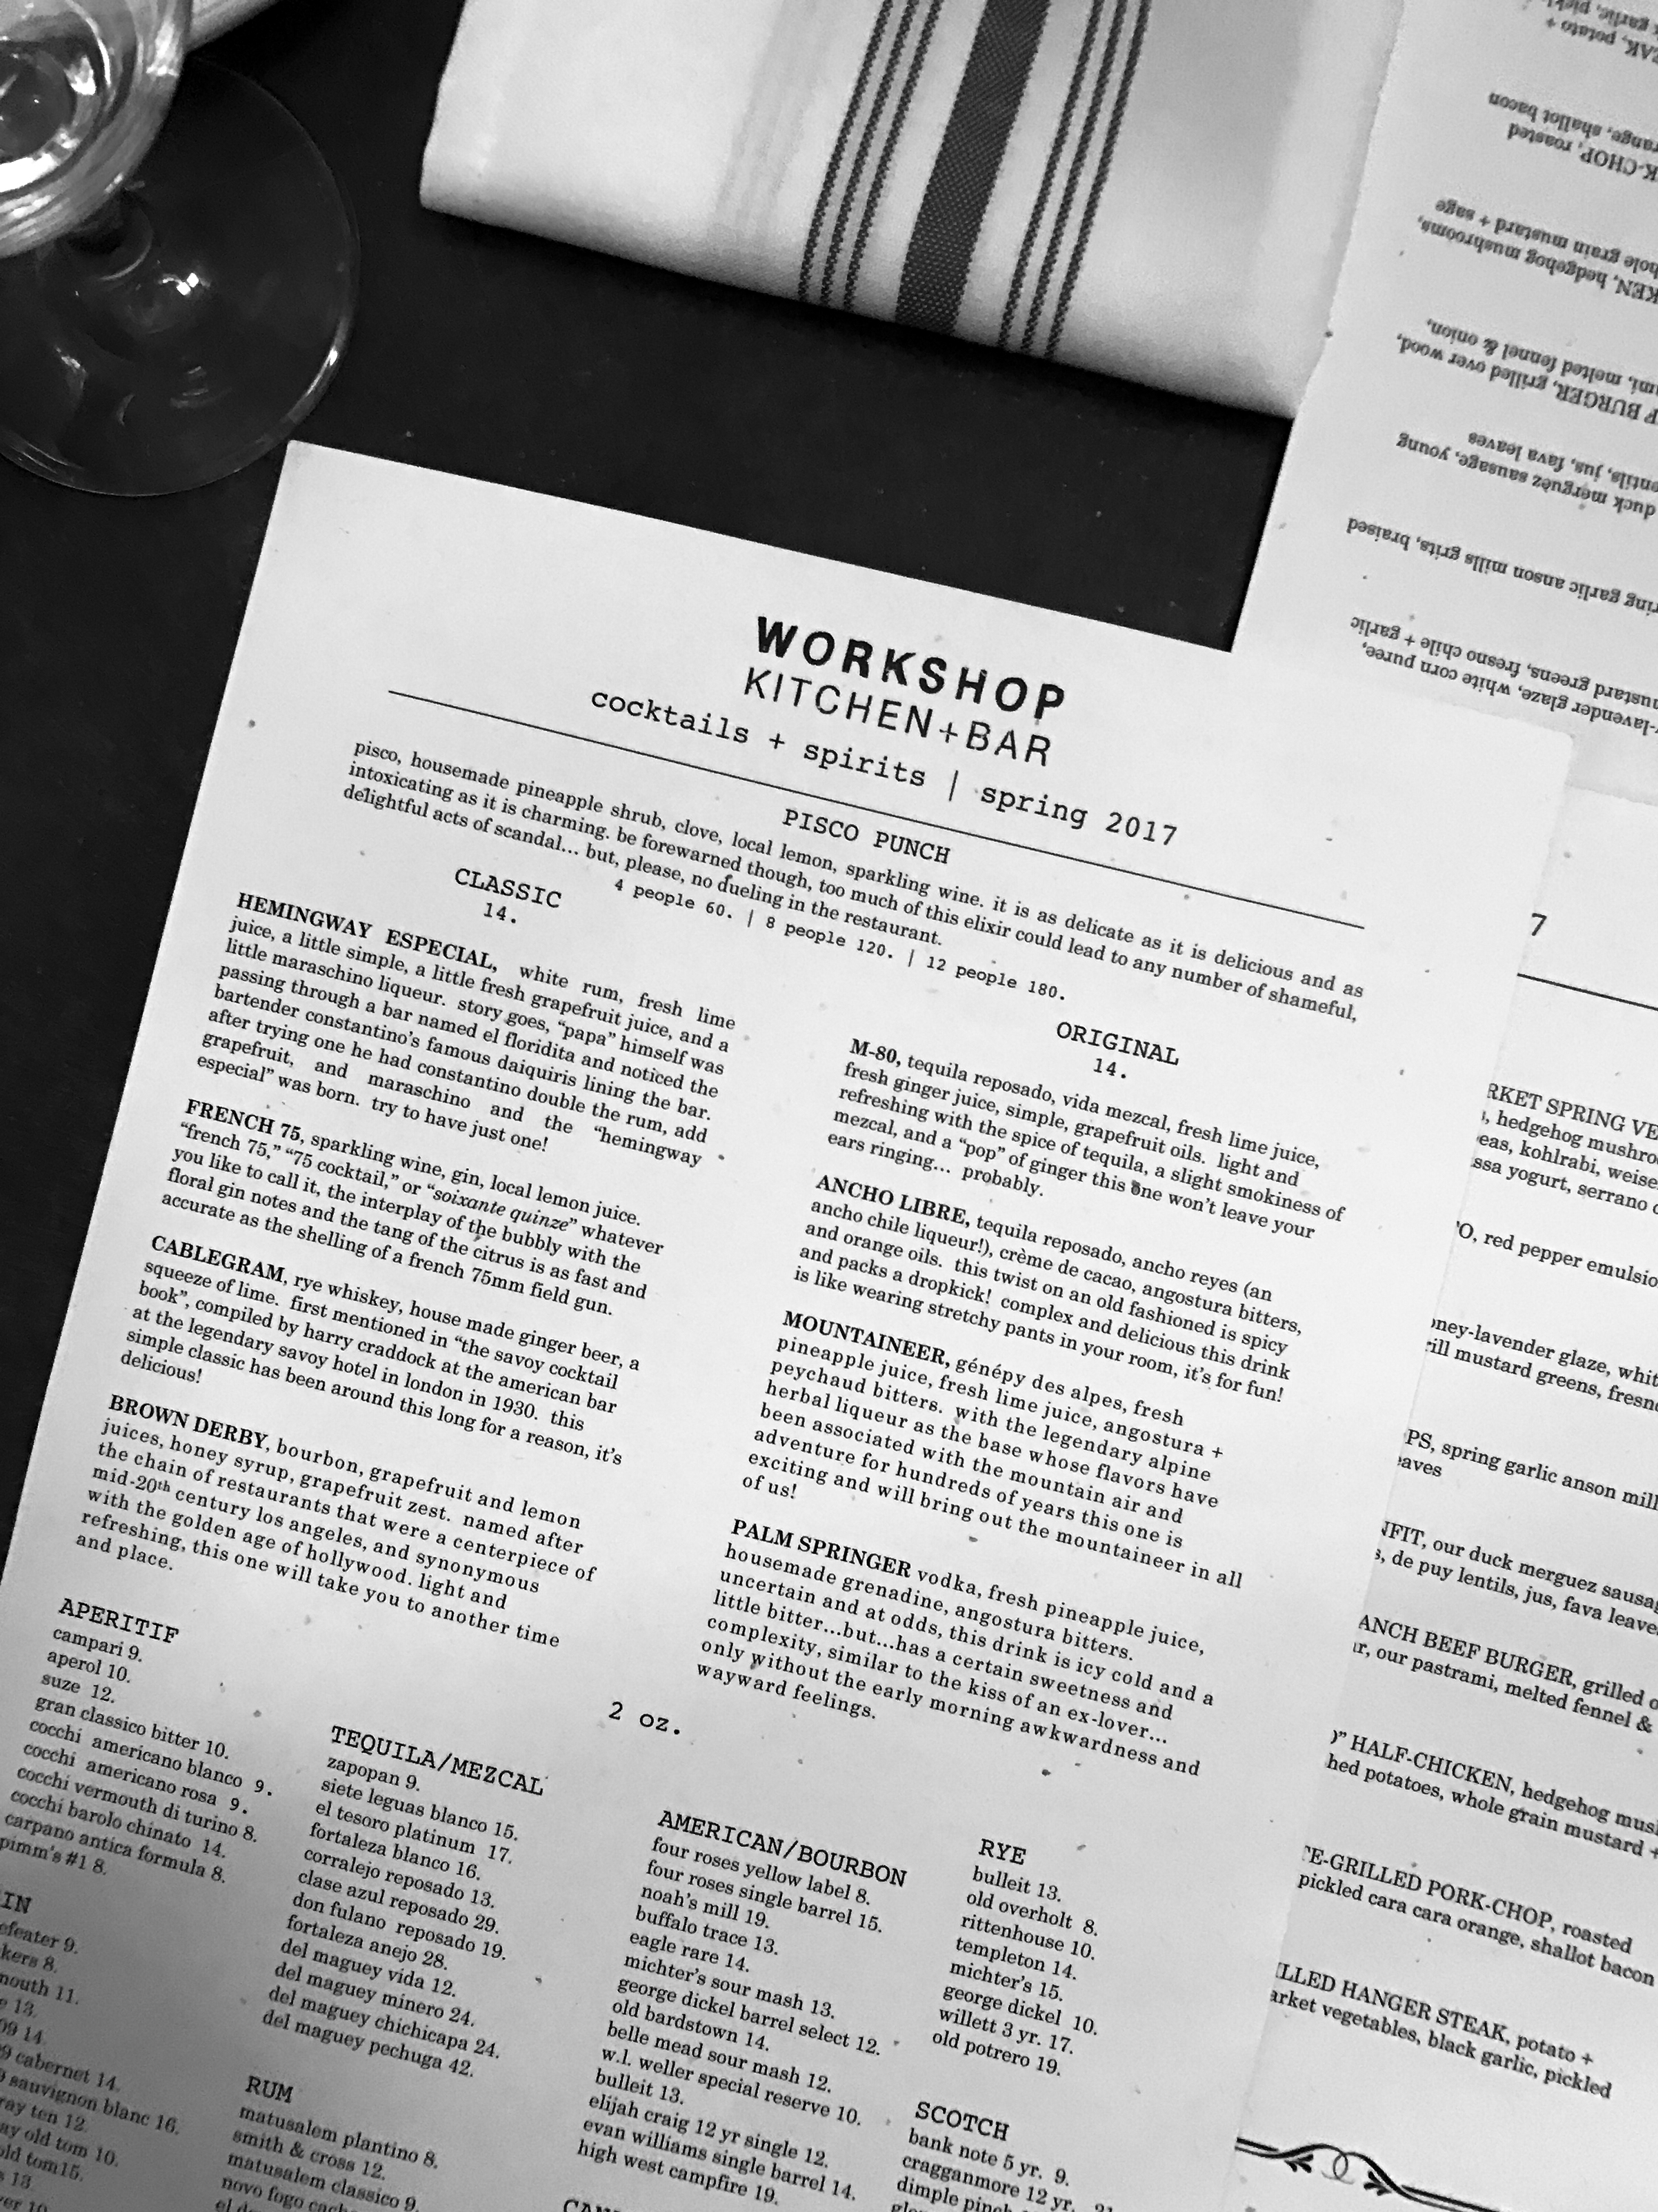 Workshop Kitchen + Bar Menu